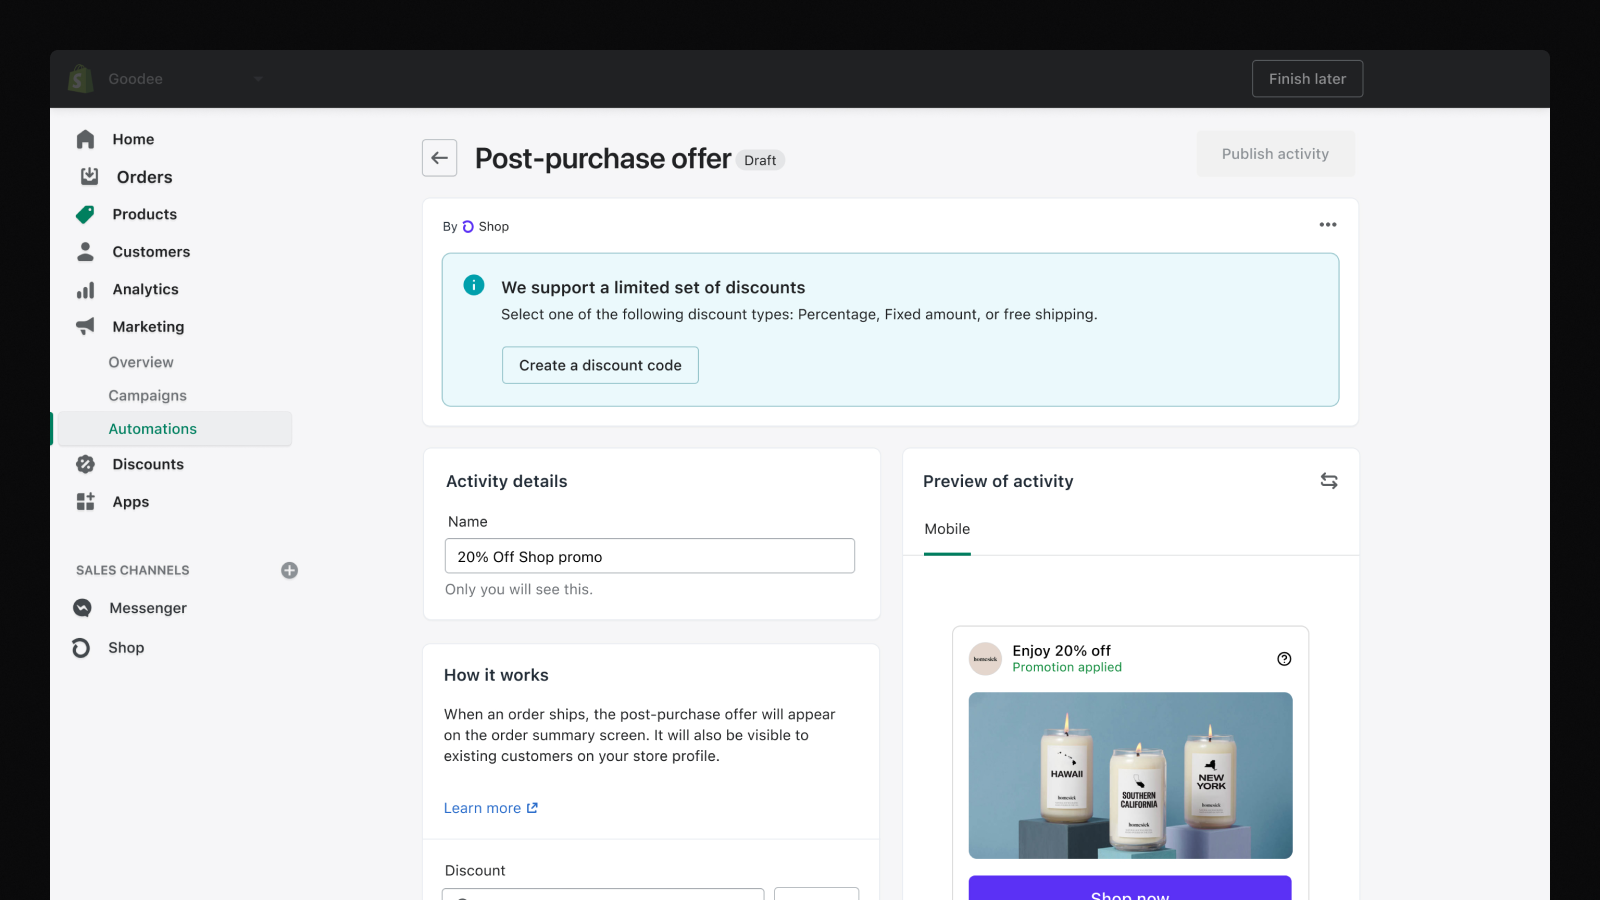 Post-purchase offers screen